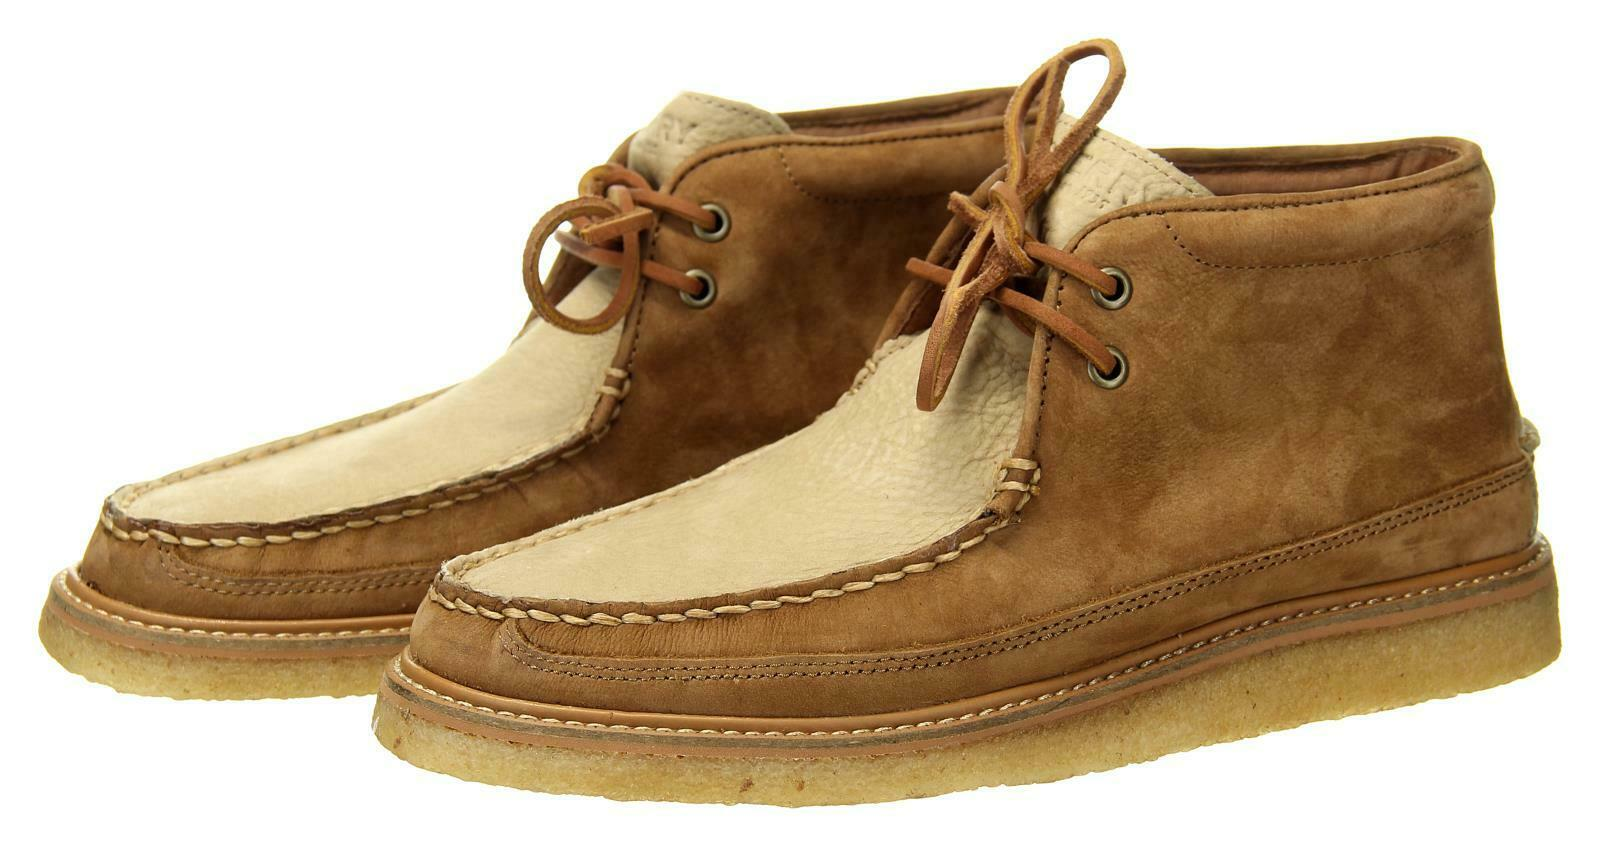 Sperry x J Crew Men's Crepe Soled Leather Chukka Boots Tan Stone 10.5M J8274